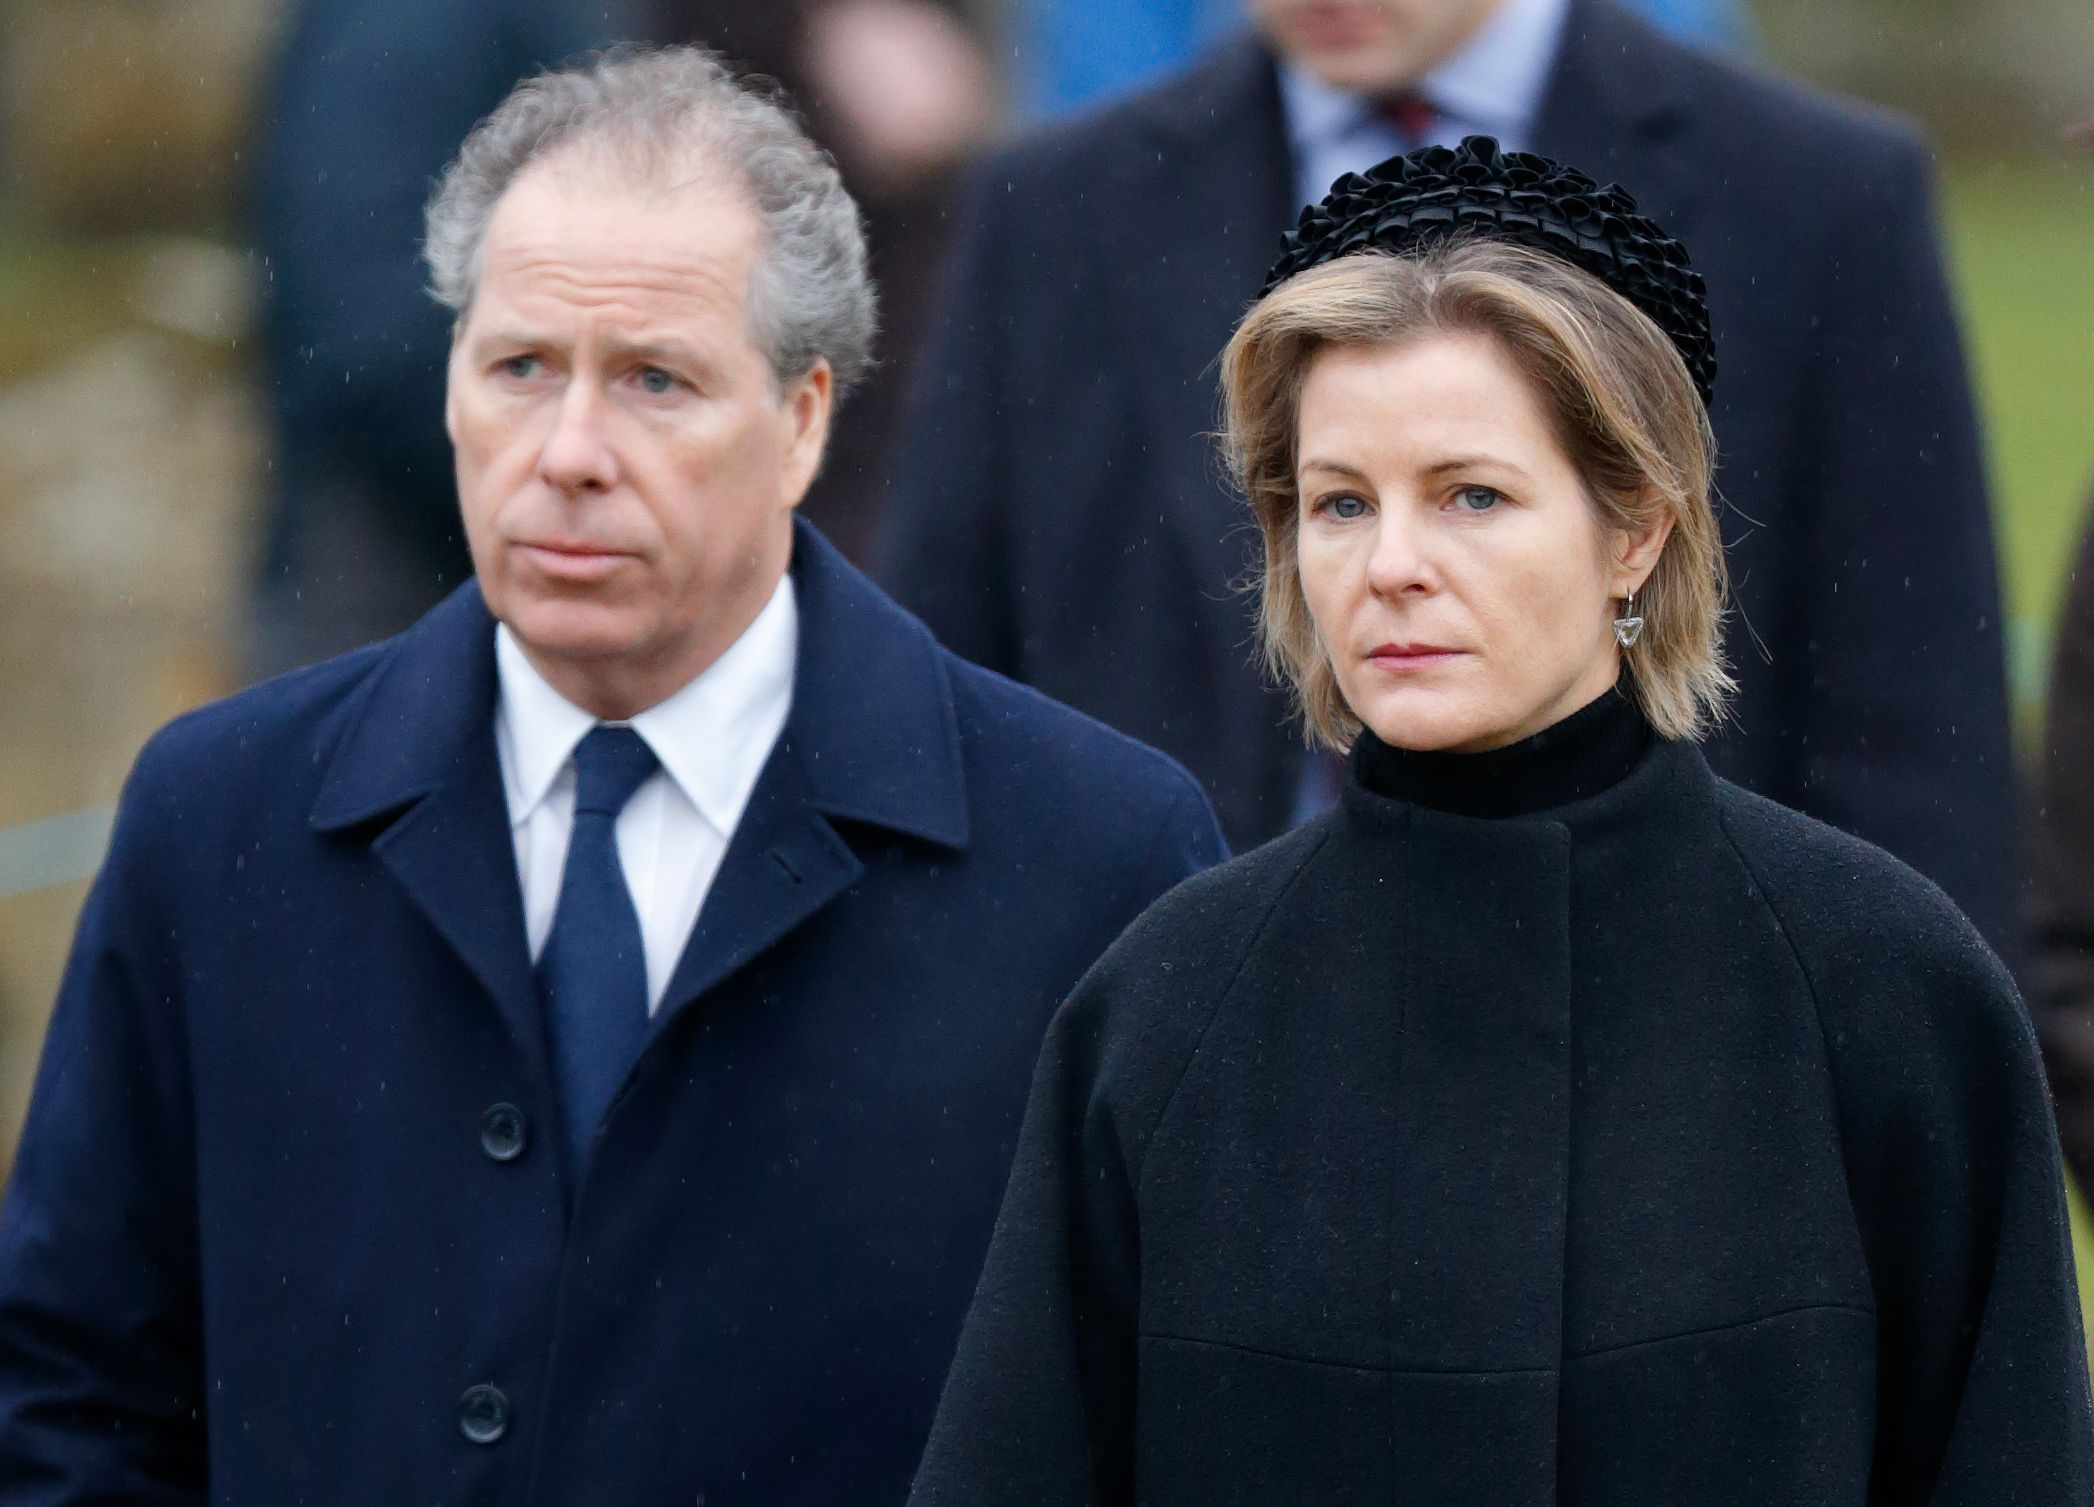 Another royal divorce: the Earl of Snowdon is separating from wife